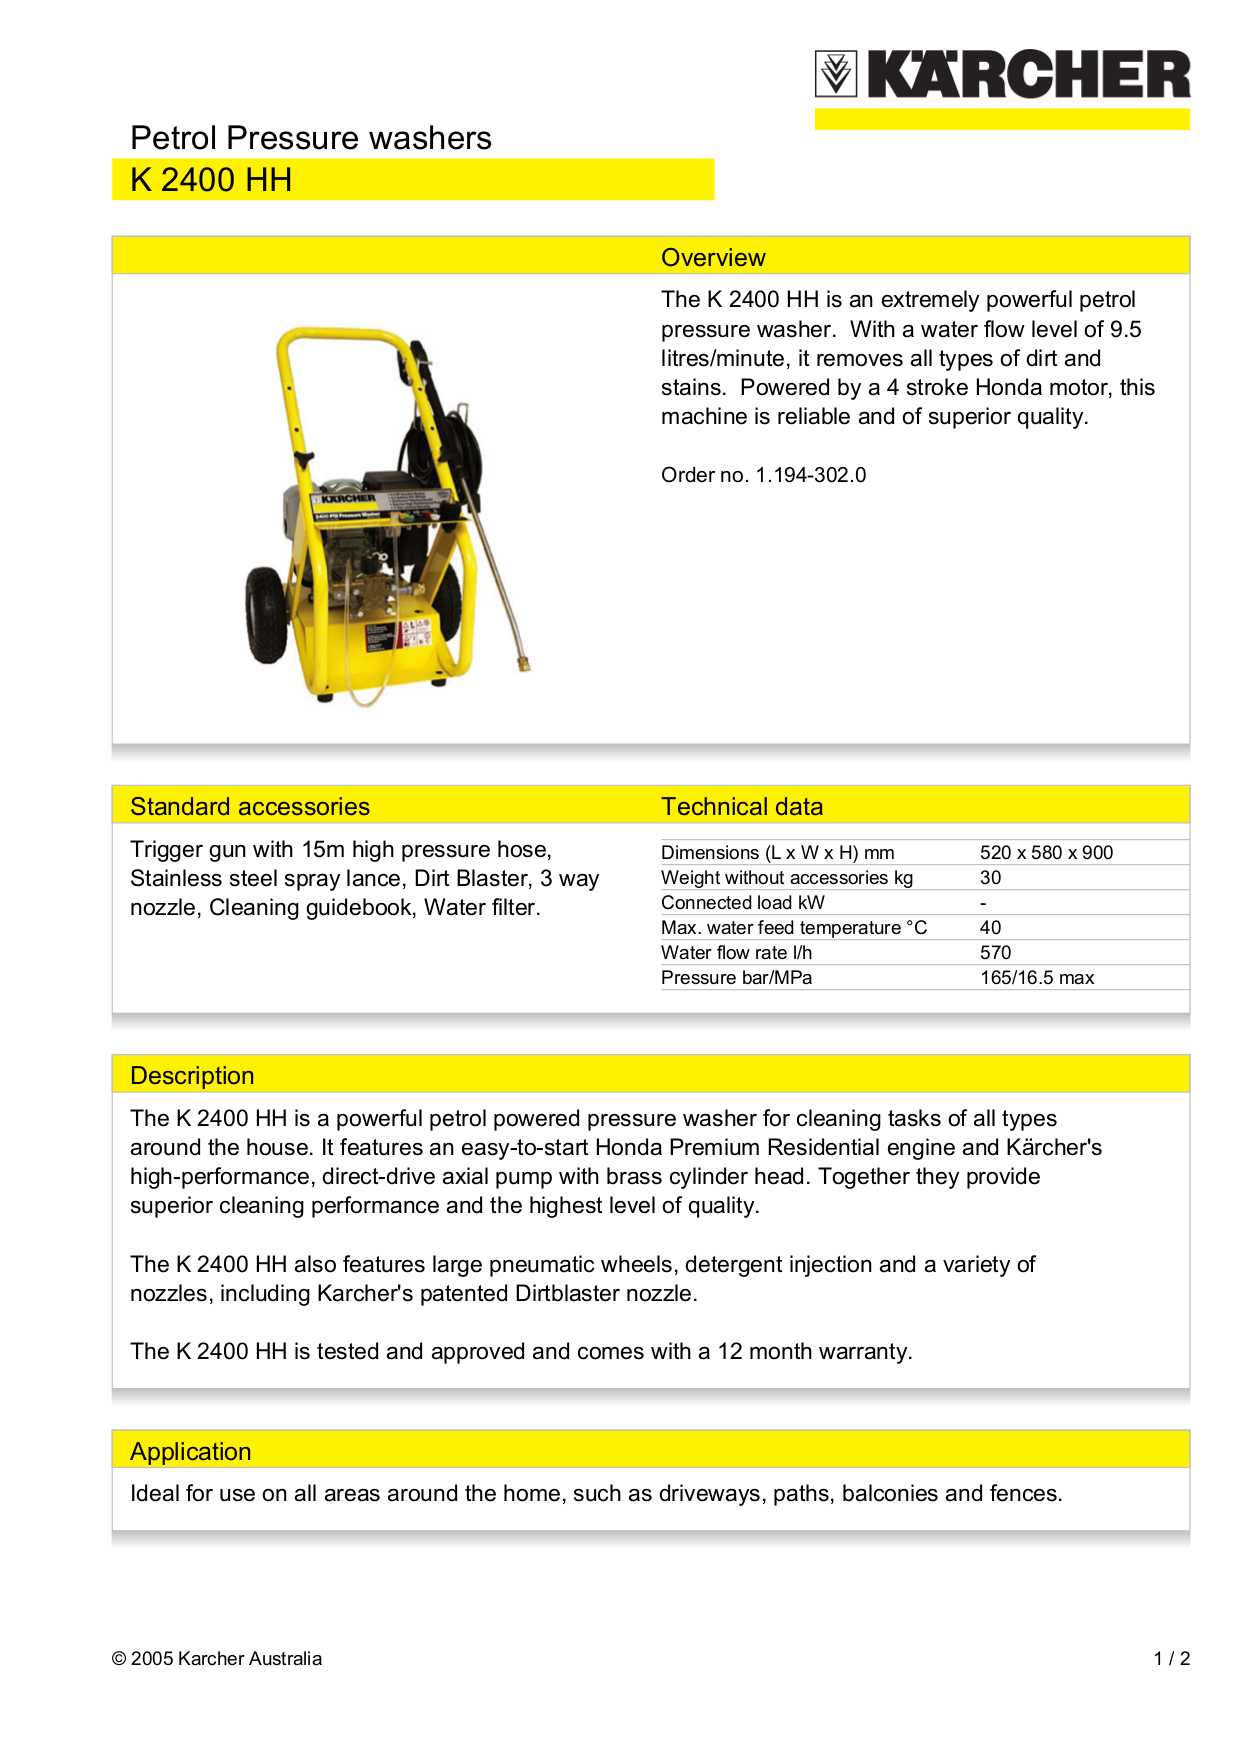 repair manual karcher pressure washer kostenlos herunterladen rh tropicalvacationspotsblog com Karcher USA Manuals Karcher Instruction Manual